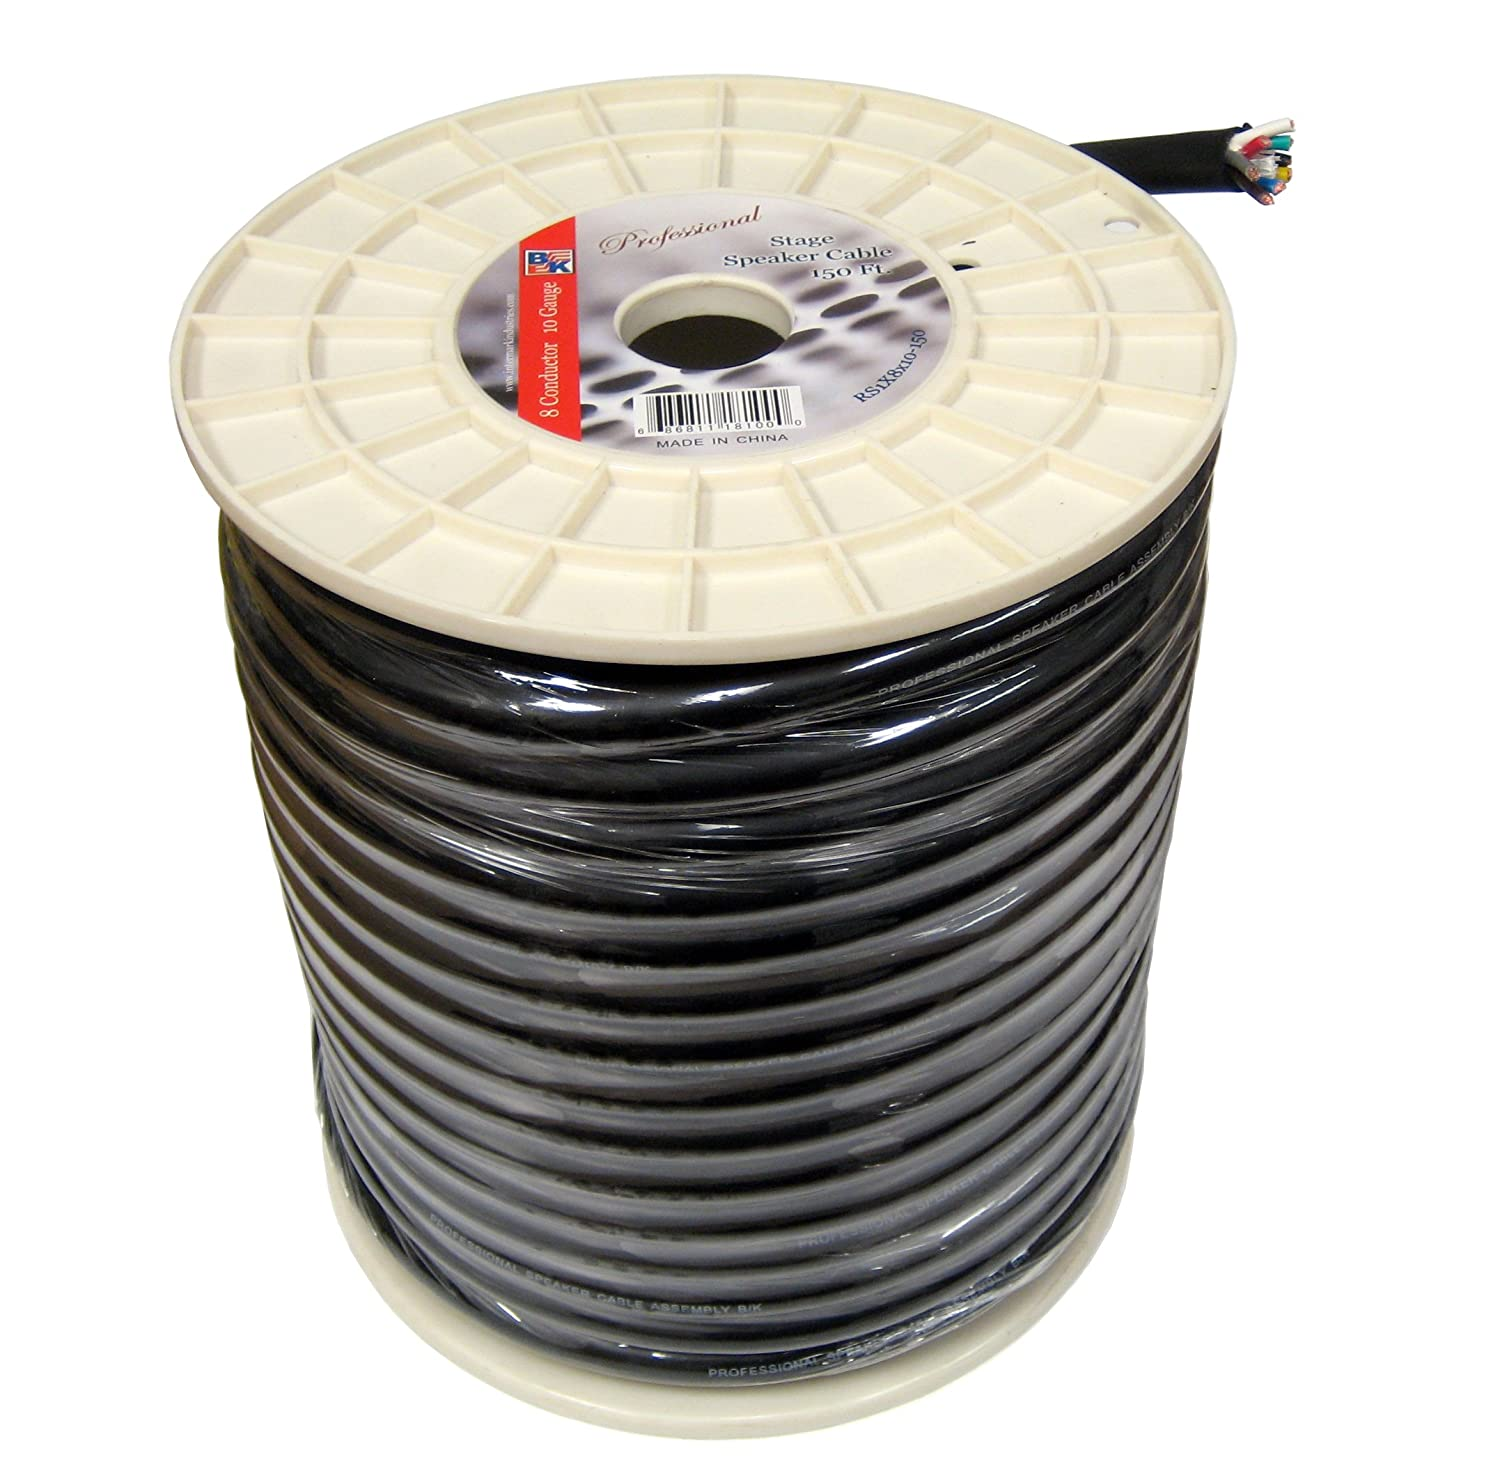 Blast King IRS1X8X10 150-Feet 10 AWG 8 Conductors Stage Speaker Cables IRS1X8X10-150